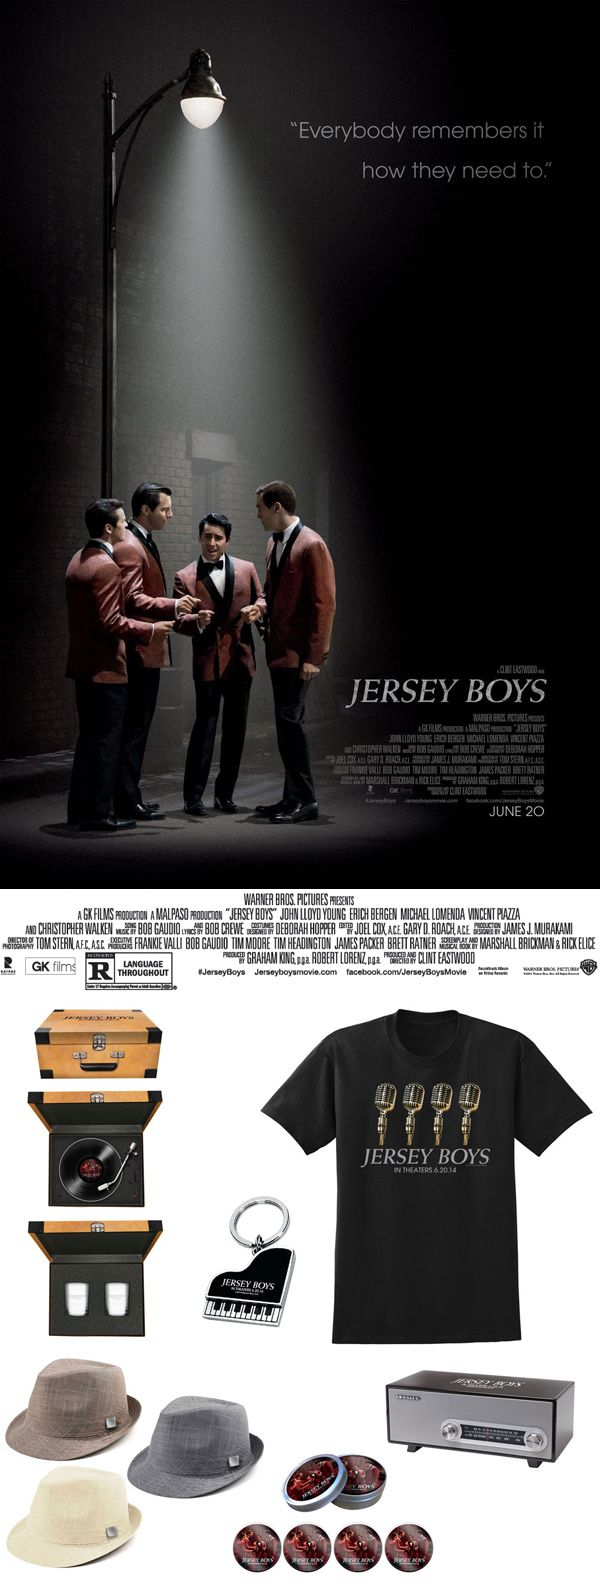 jersey-boys-giveaway